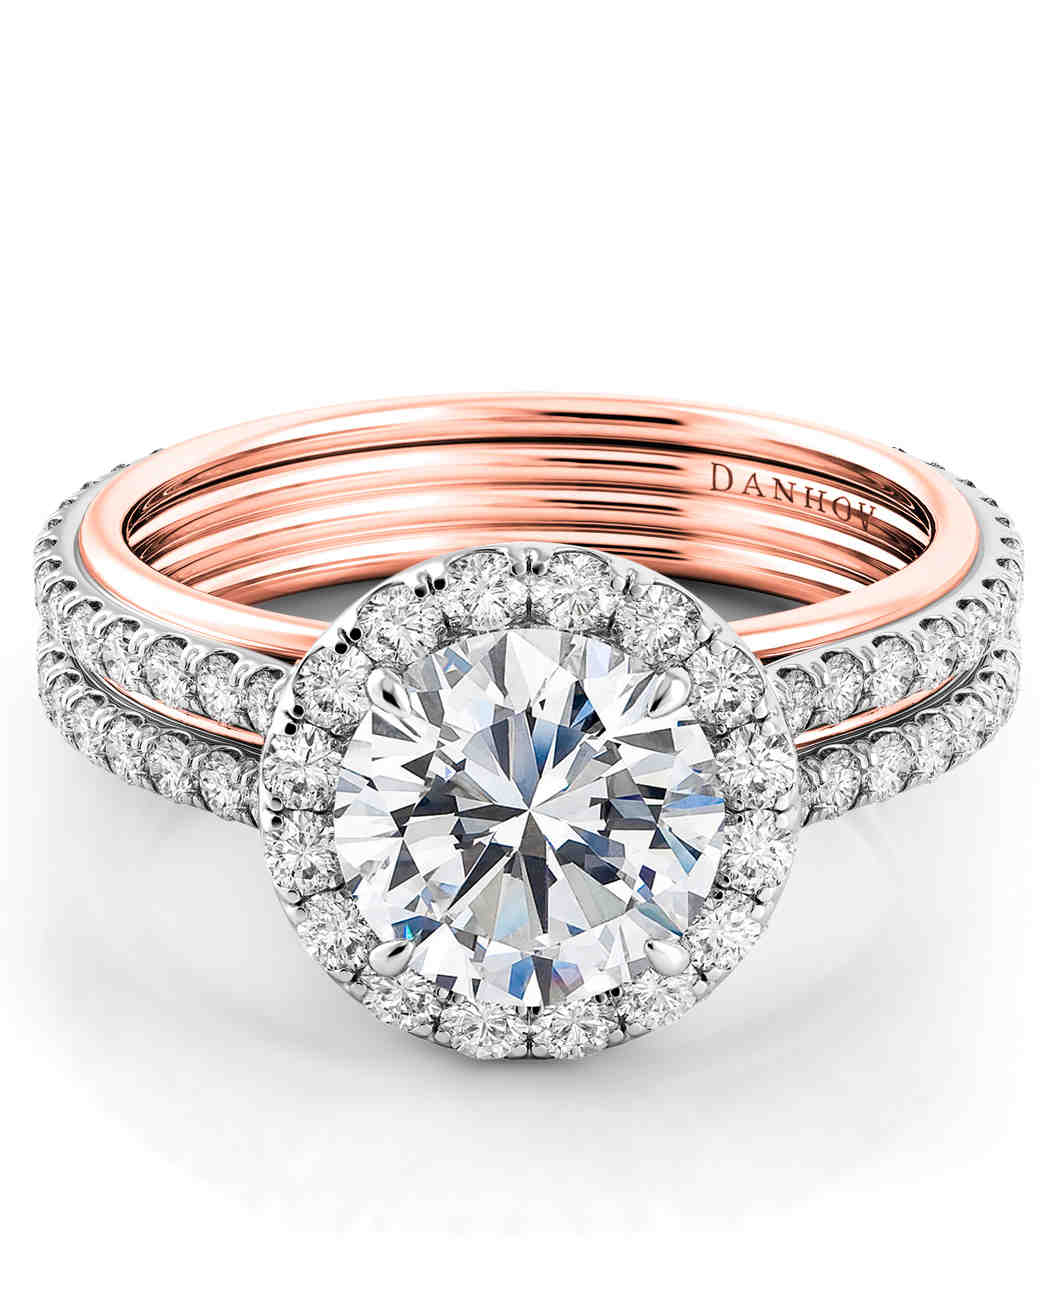 Danhov rose gold double shank halo engagement ring